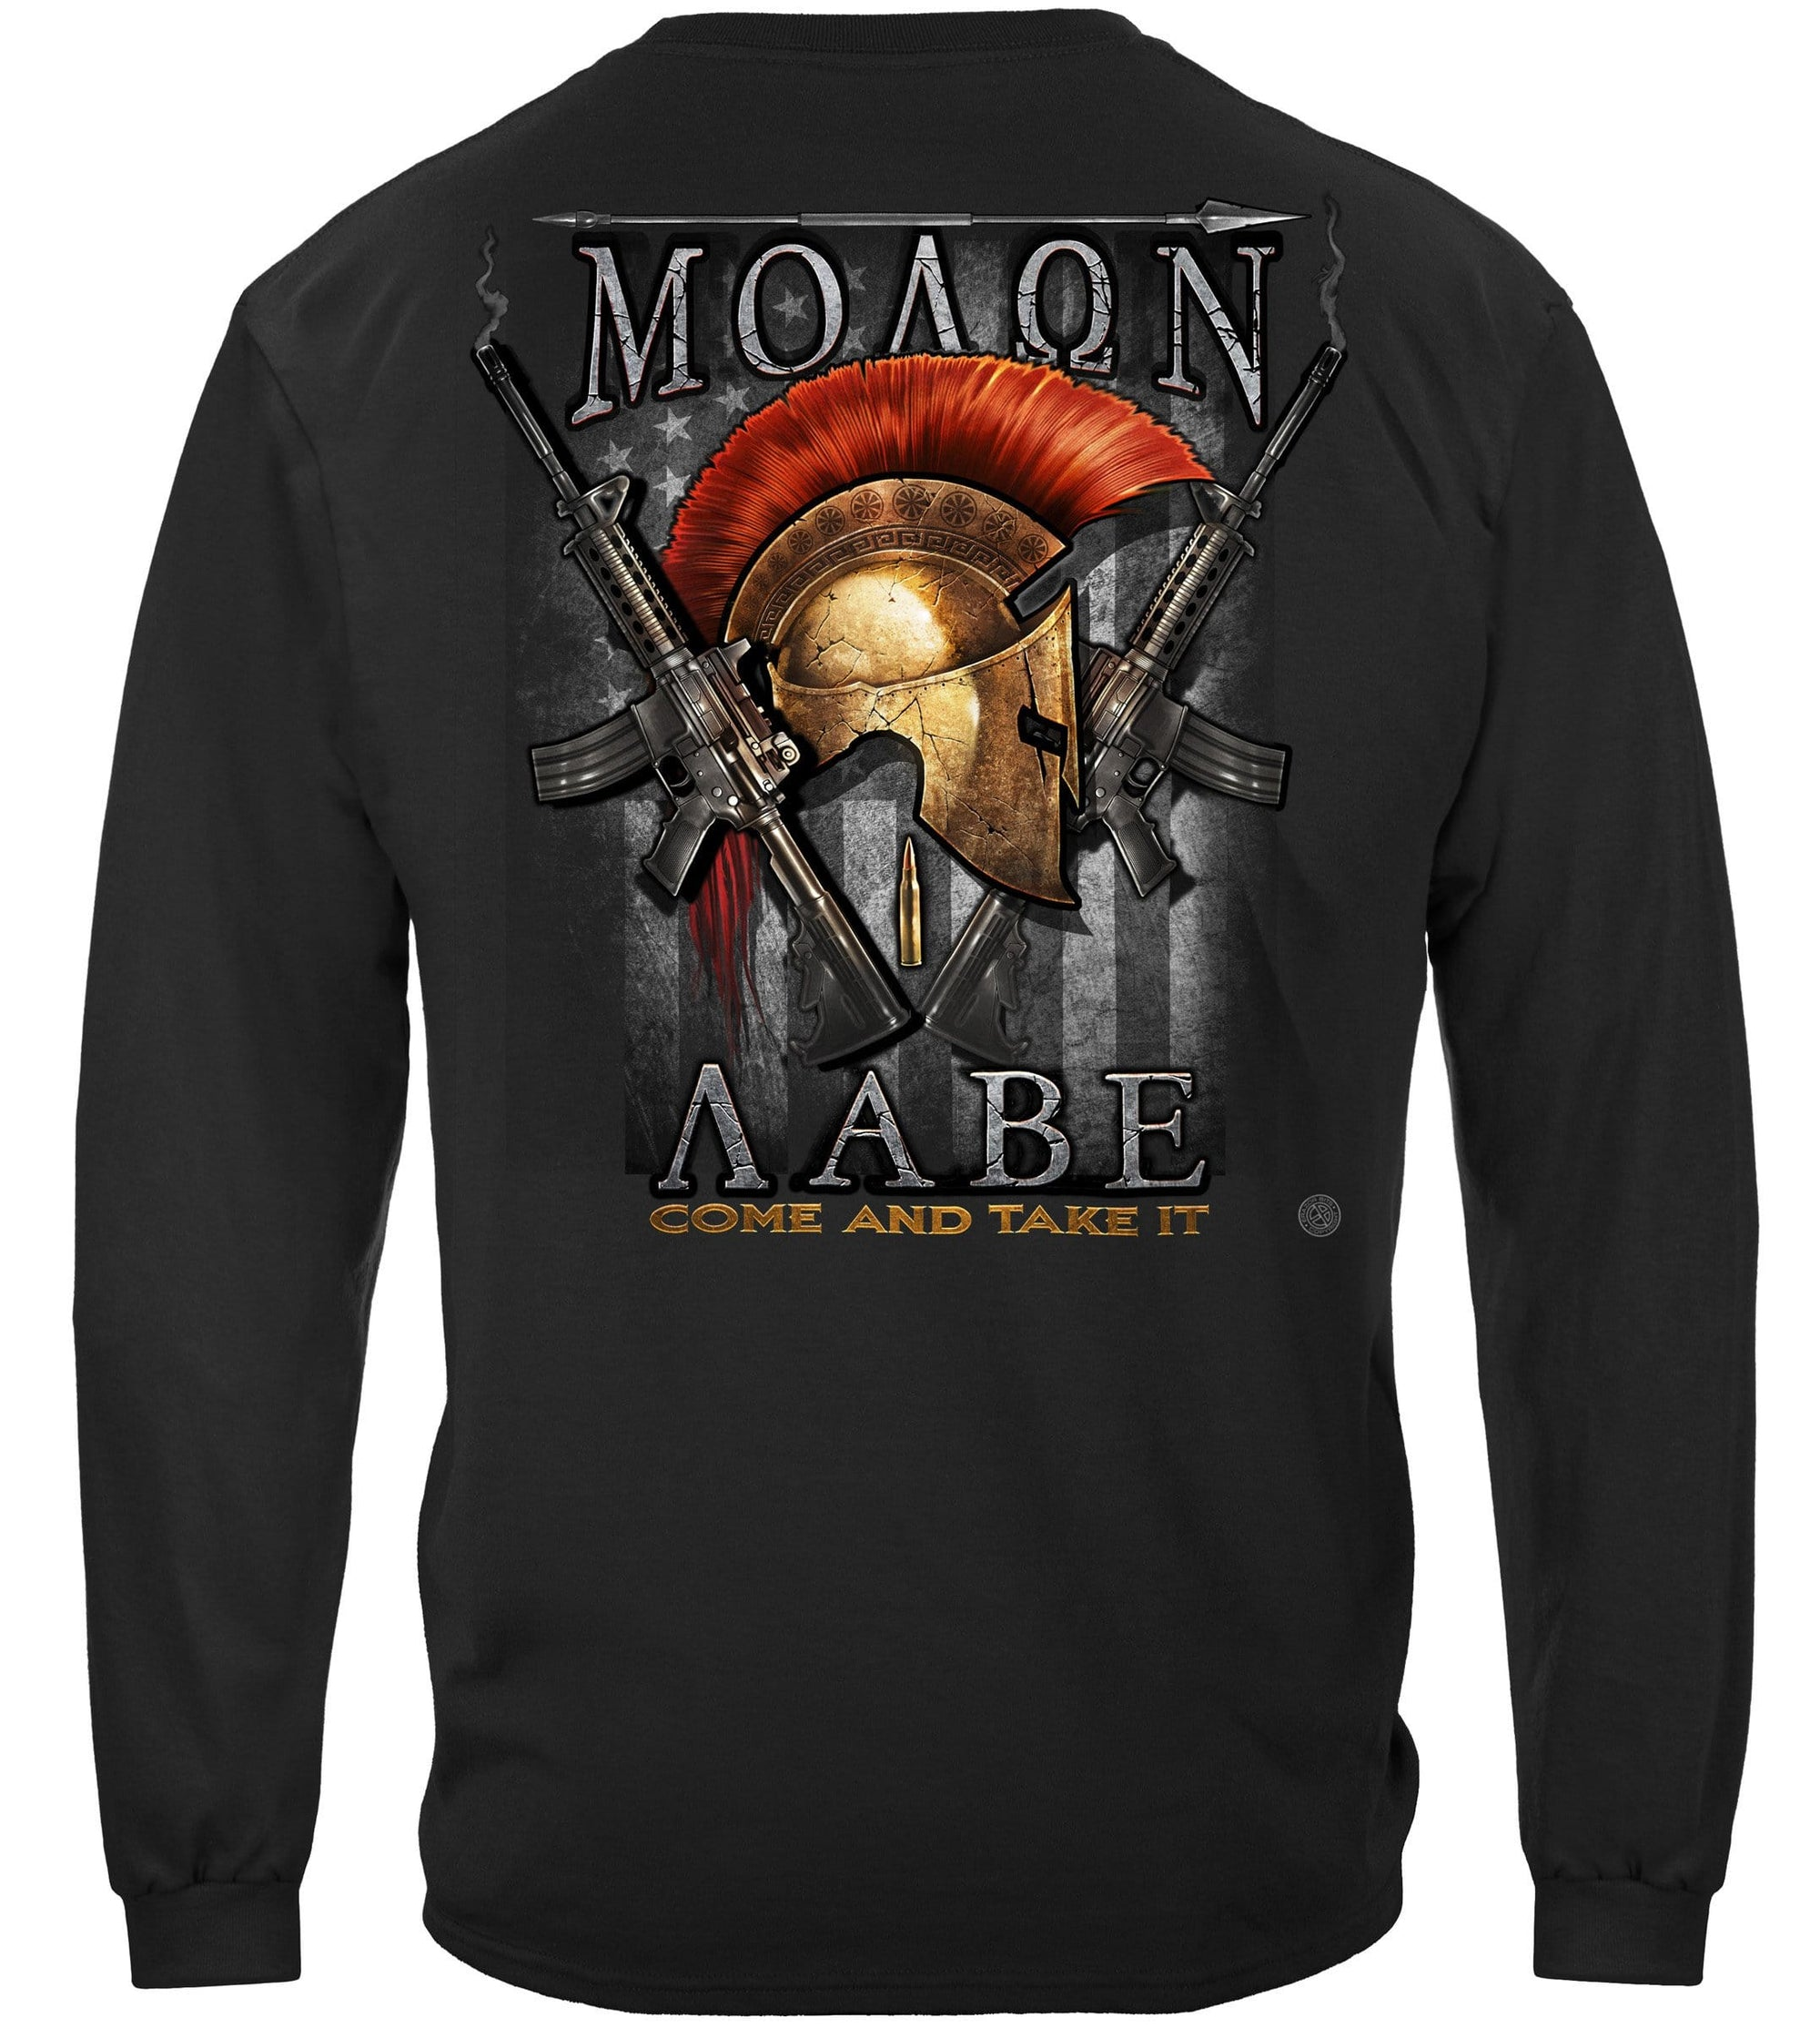 2nd Amendment Molon Labe Premium Men's Long Sleeve